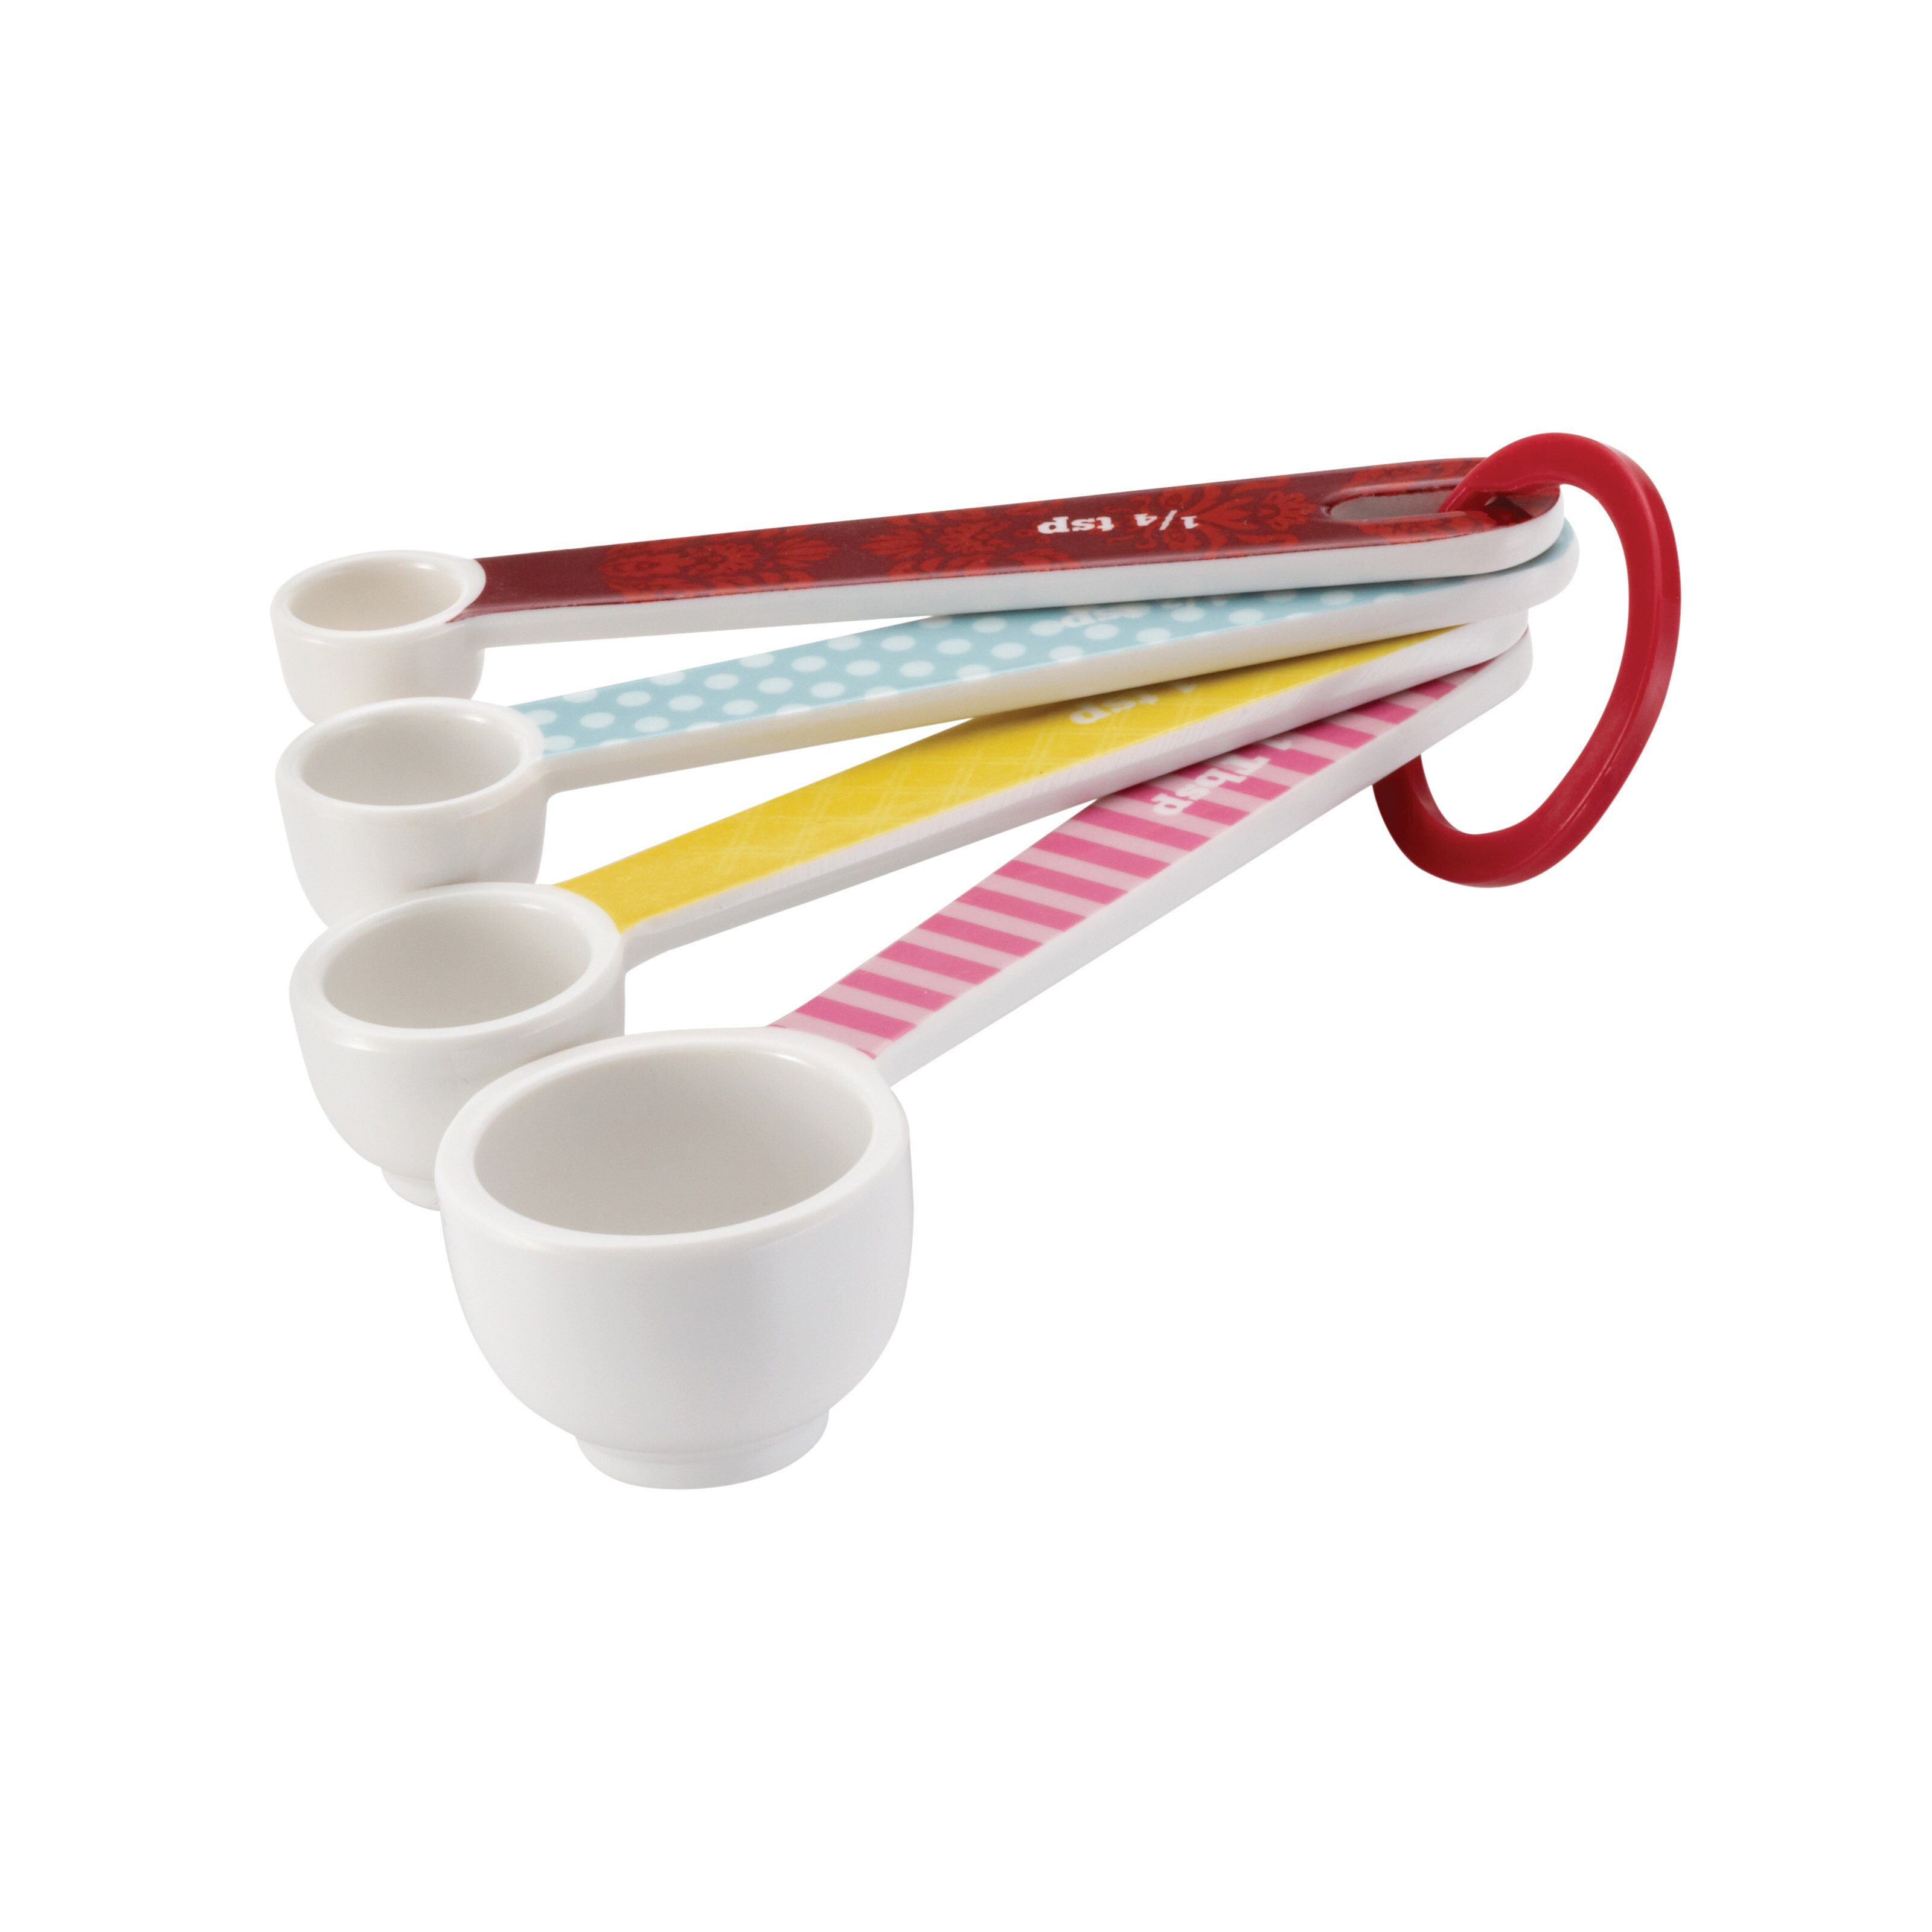 Decorative Measuring Spoons And Cups Cake Boss 8 Piece Measuring Cup Spoon Set Reviews Wayfair